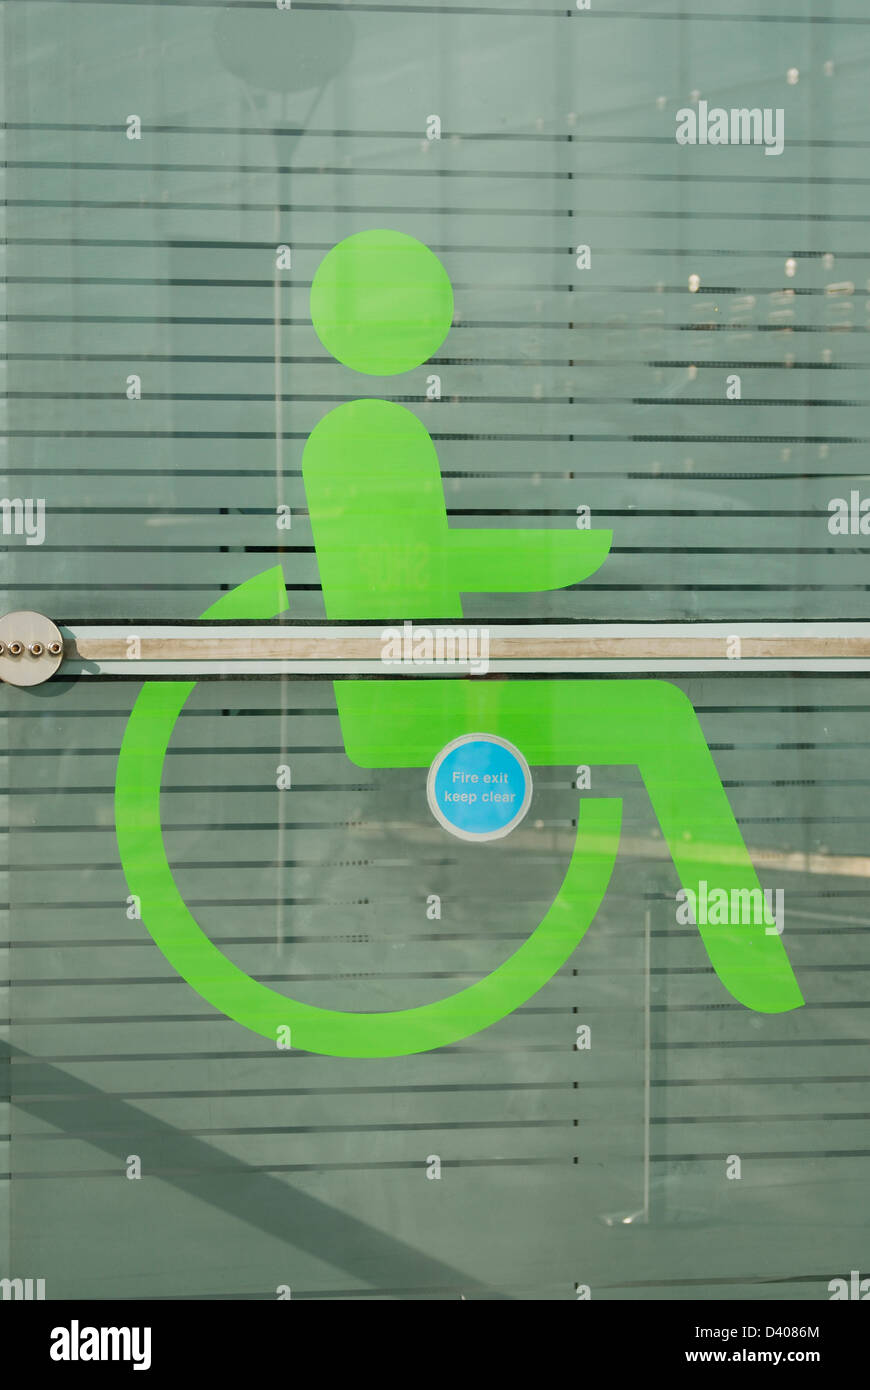 Disability sign on plate glass facade of the Urbis Building, Manchester. - Stock Image